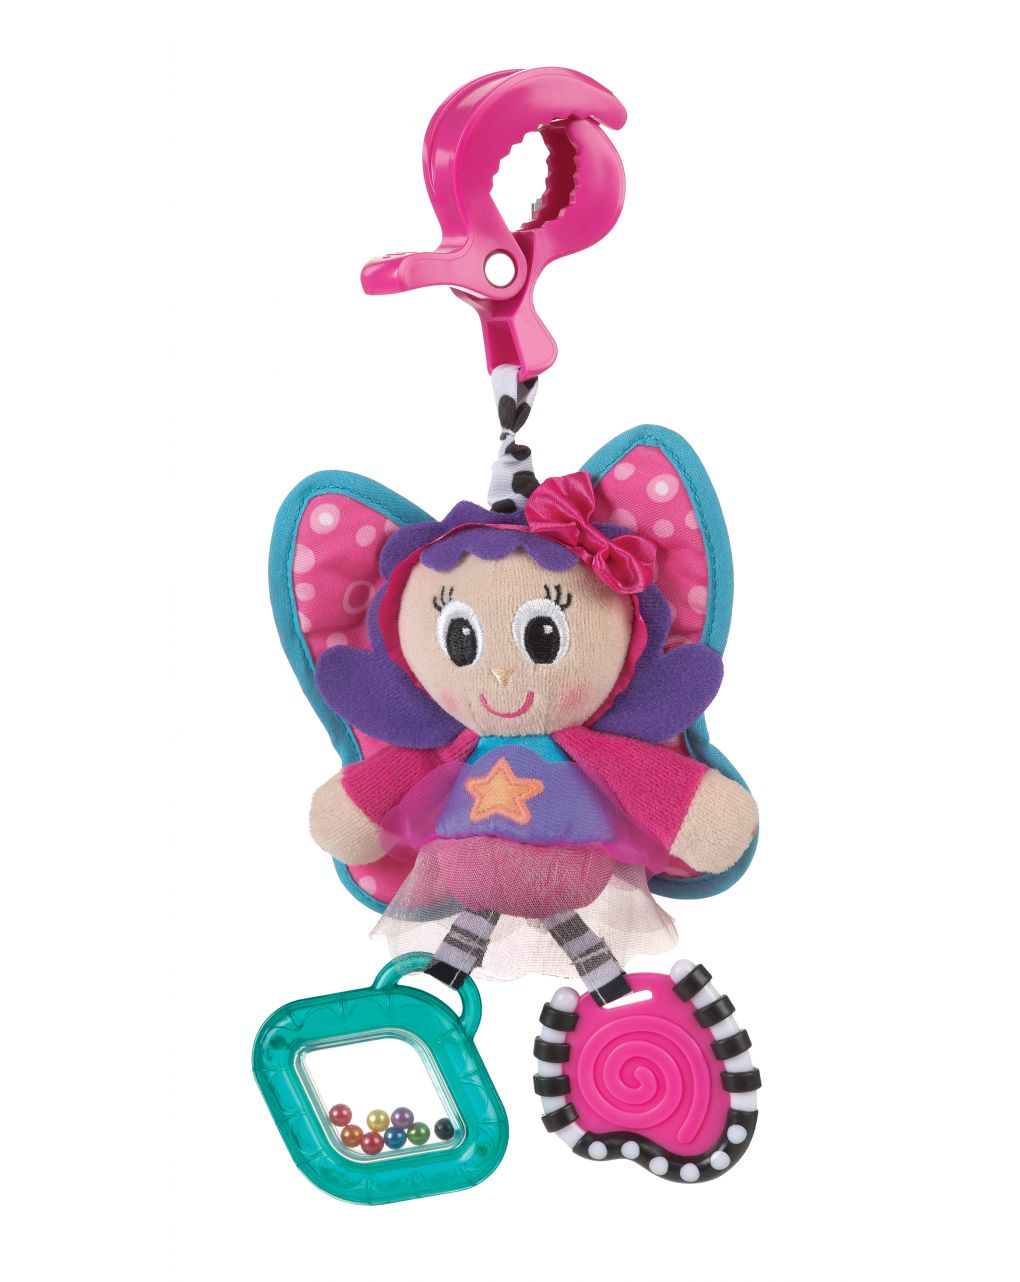 Playgro - dingly dangly floss the fairy - Playgro